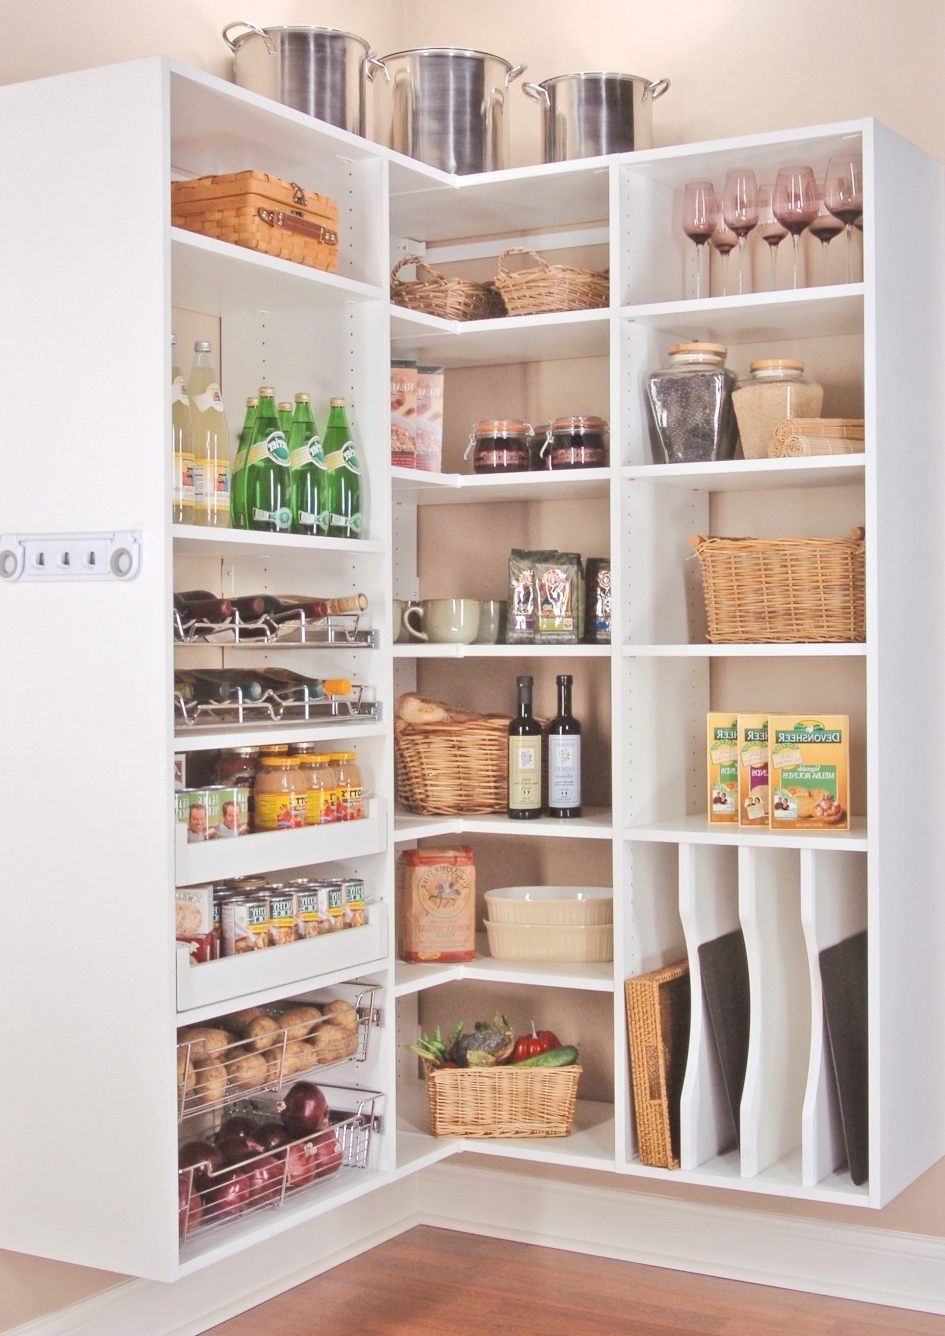 Current Wood Wall Mounted Corner Kitchen Shelving Unit Painted With White Throughout Painted Shelving Units (View 2 of 15)